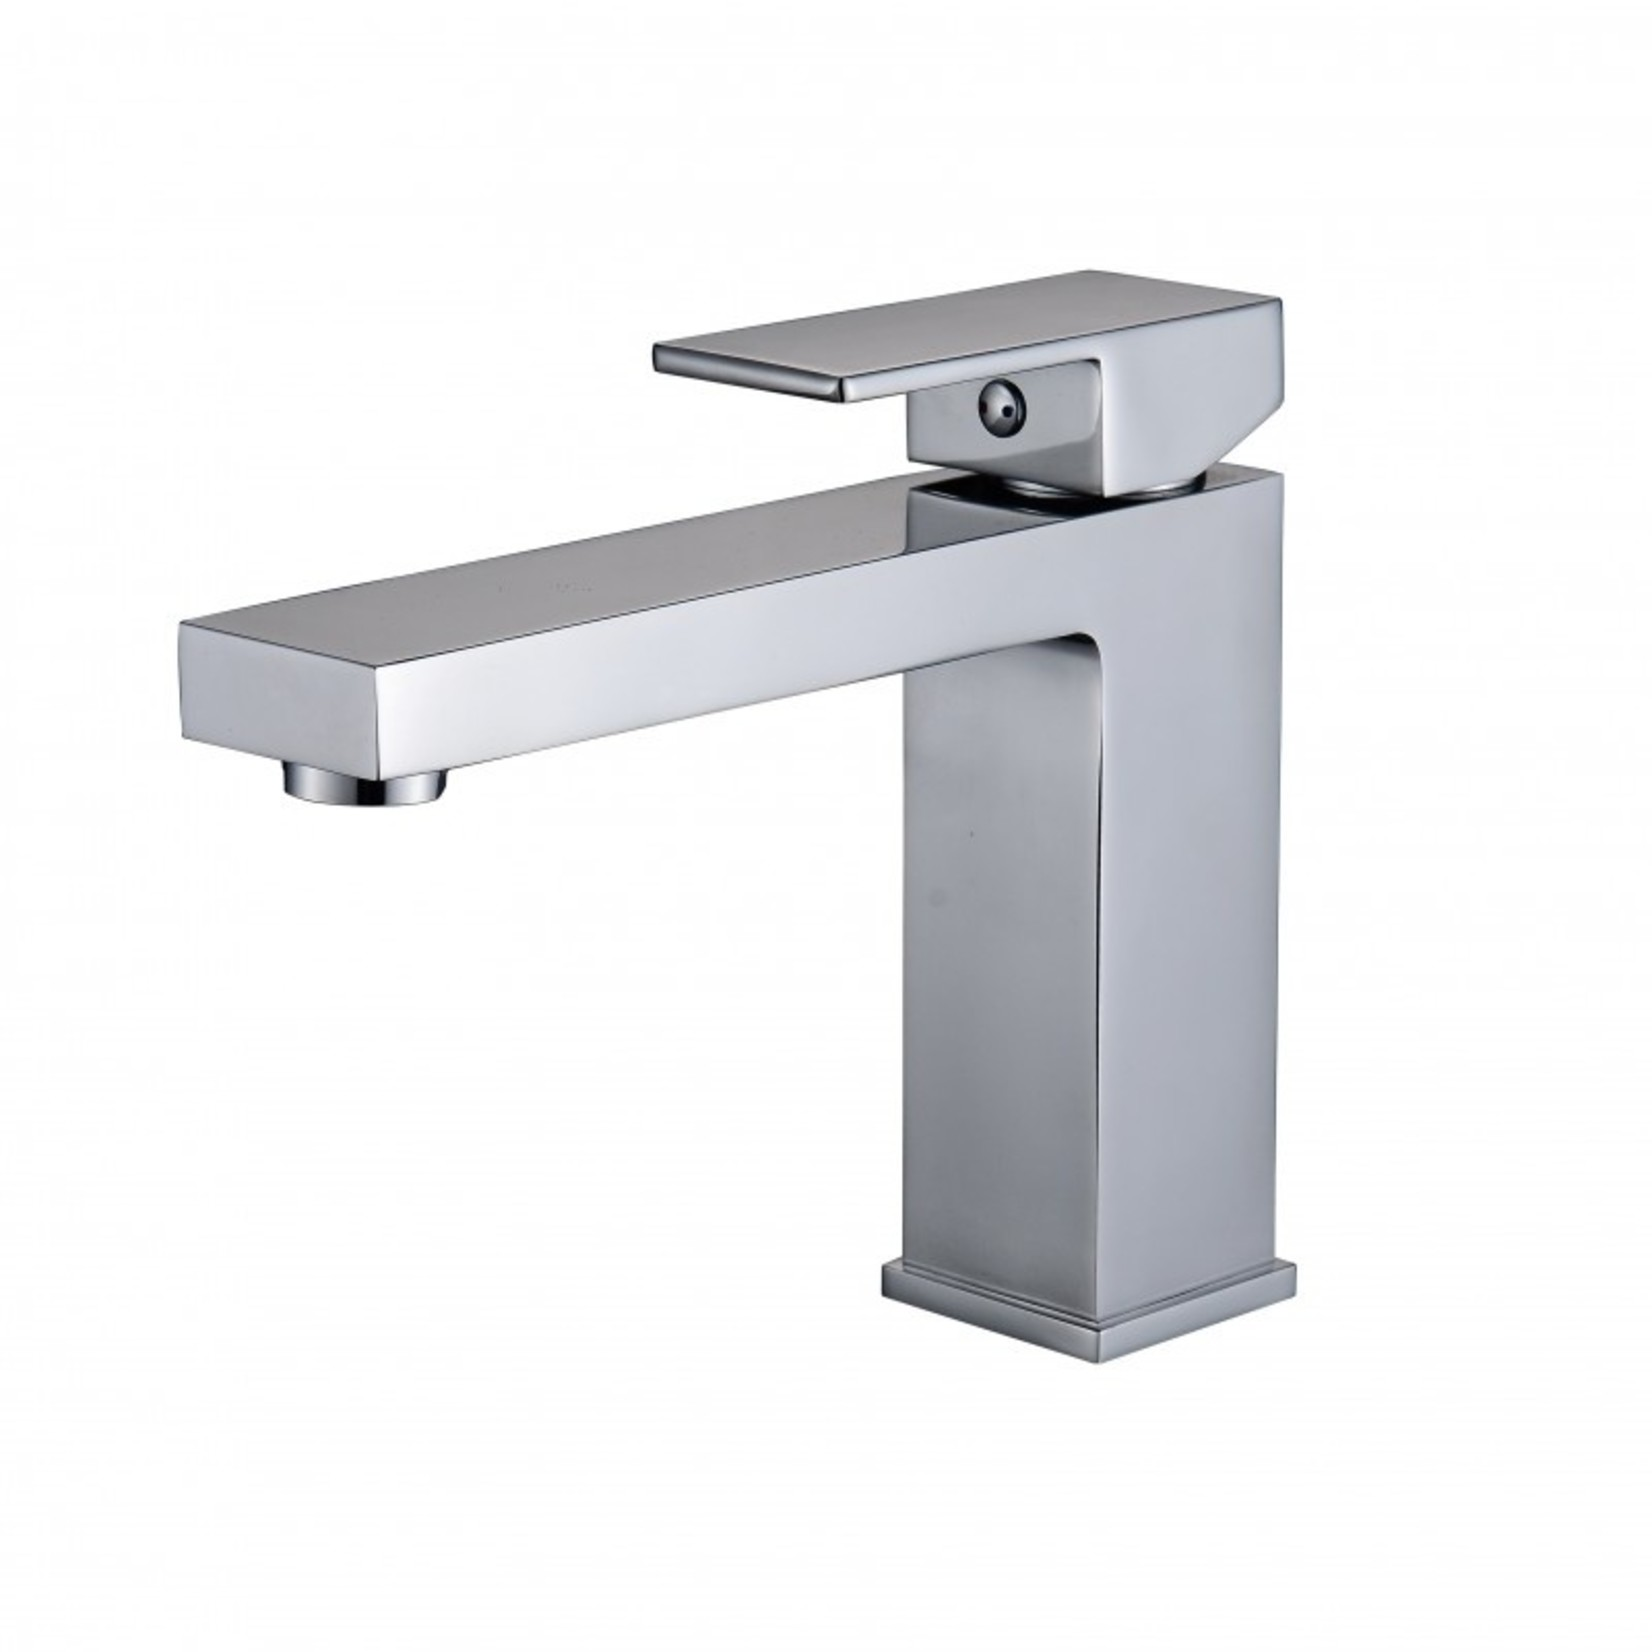 Chrome washbasin faucet Kimmi collection 145-10